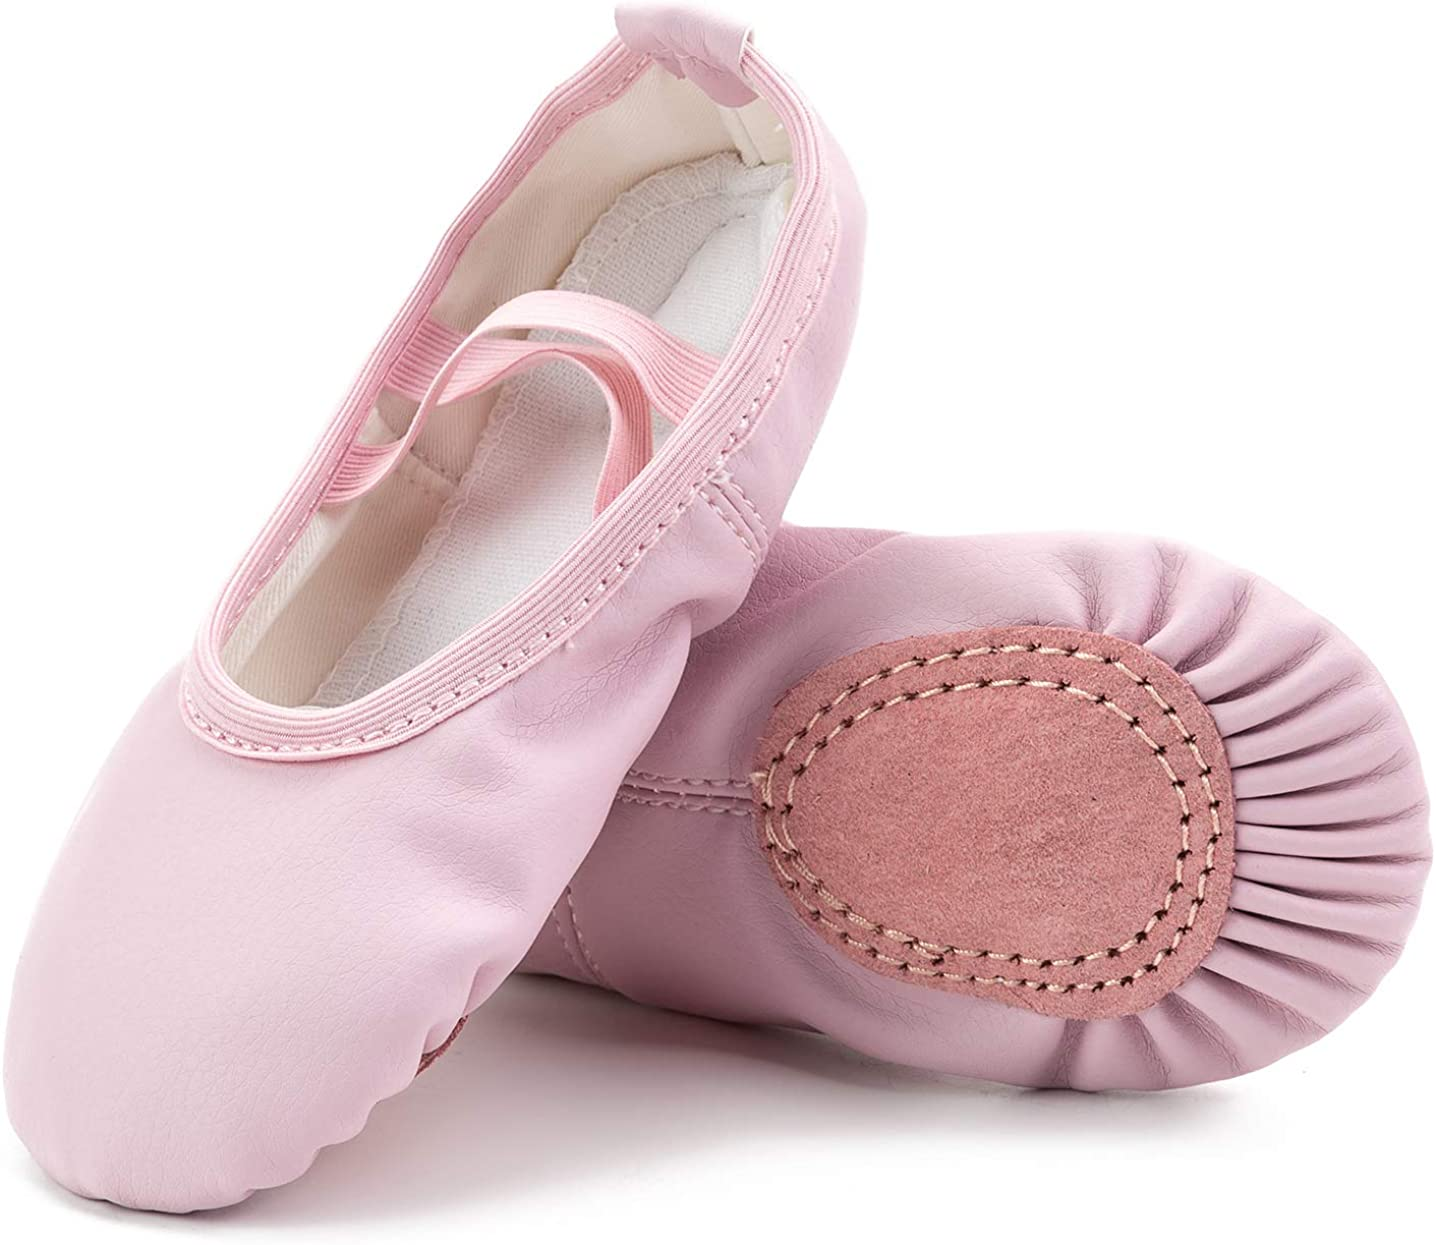 Women/'s ballerinas in authentic leather gift for her soft leather women/'s shoes,Women/'s handmade leather mules